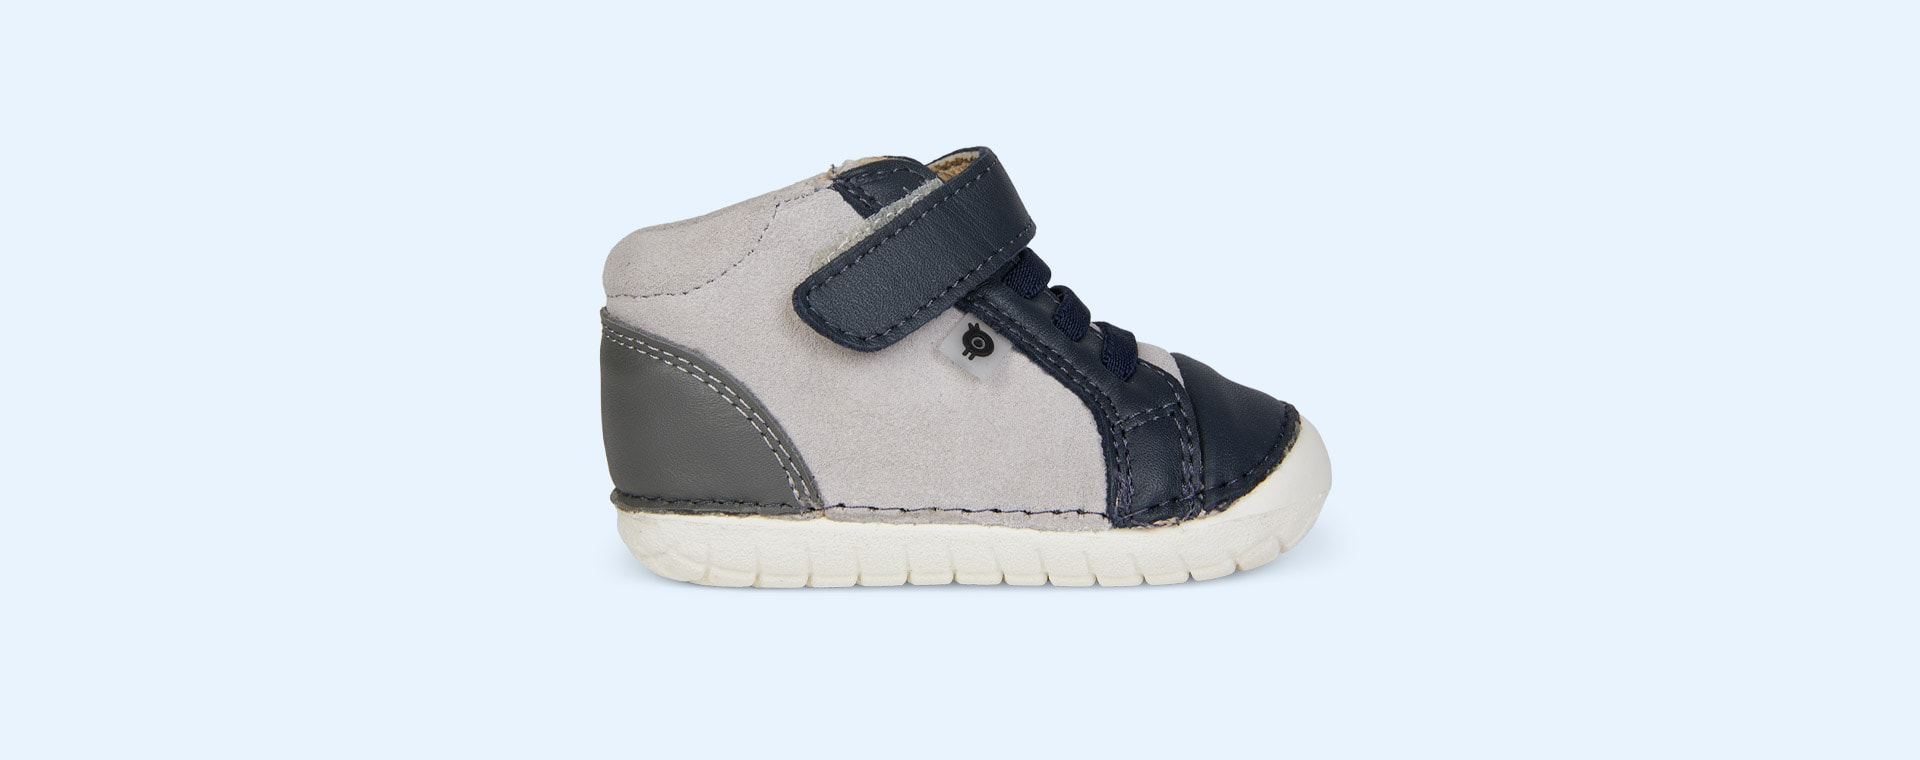 Navy/Grey/Grey Suede old soles High Pave First Trainer